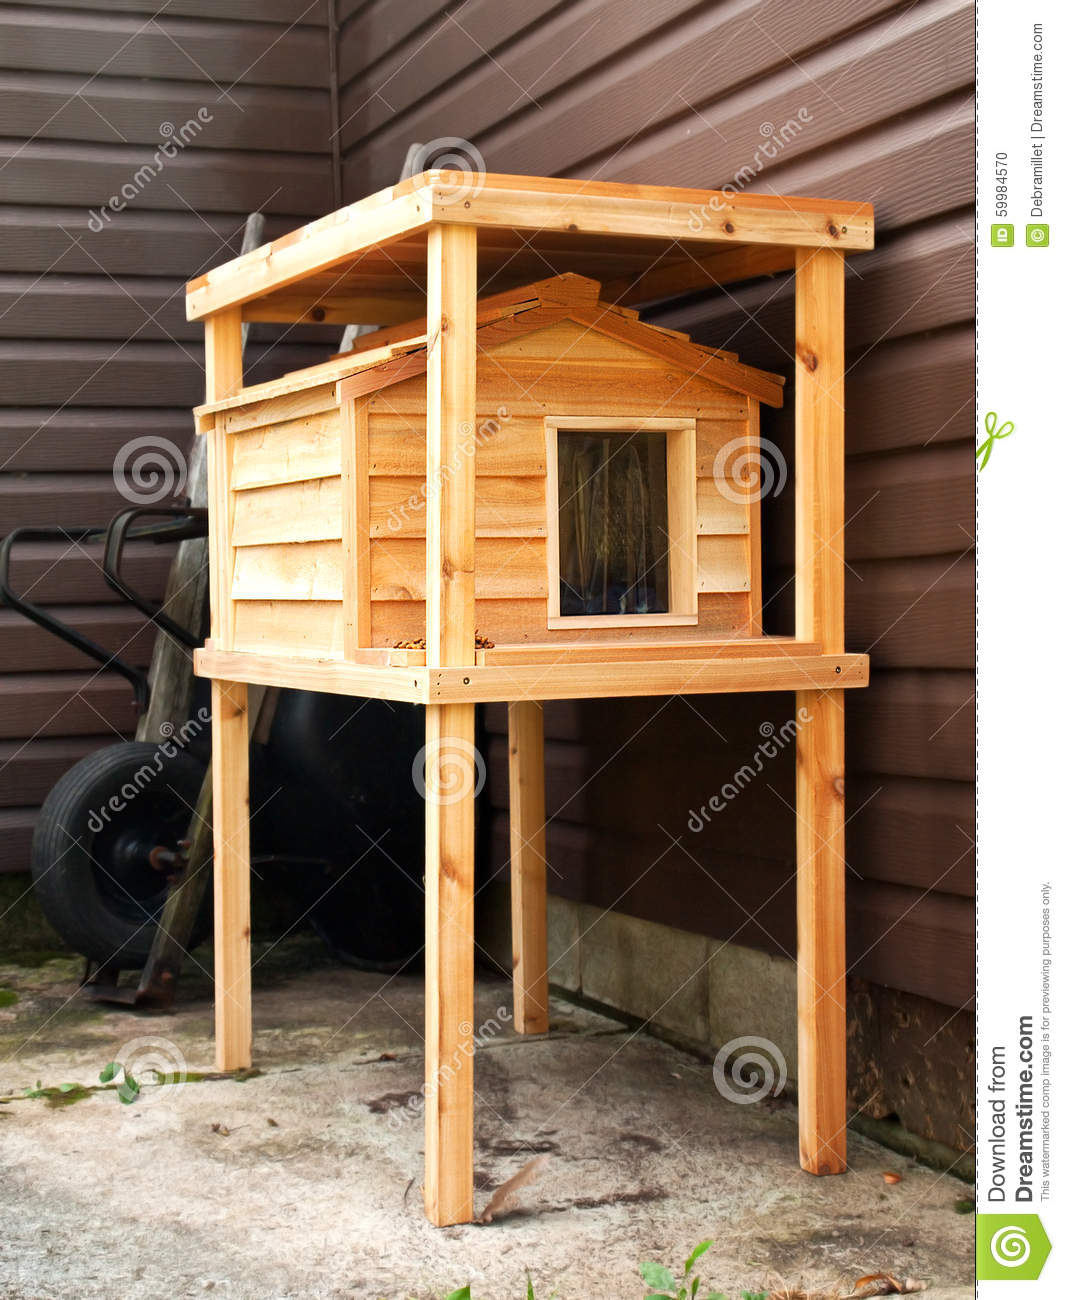 pulpit cat house ~ feral cat house stock photo  image 59984570